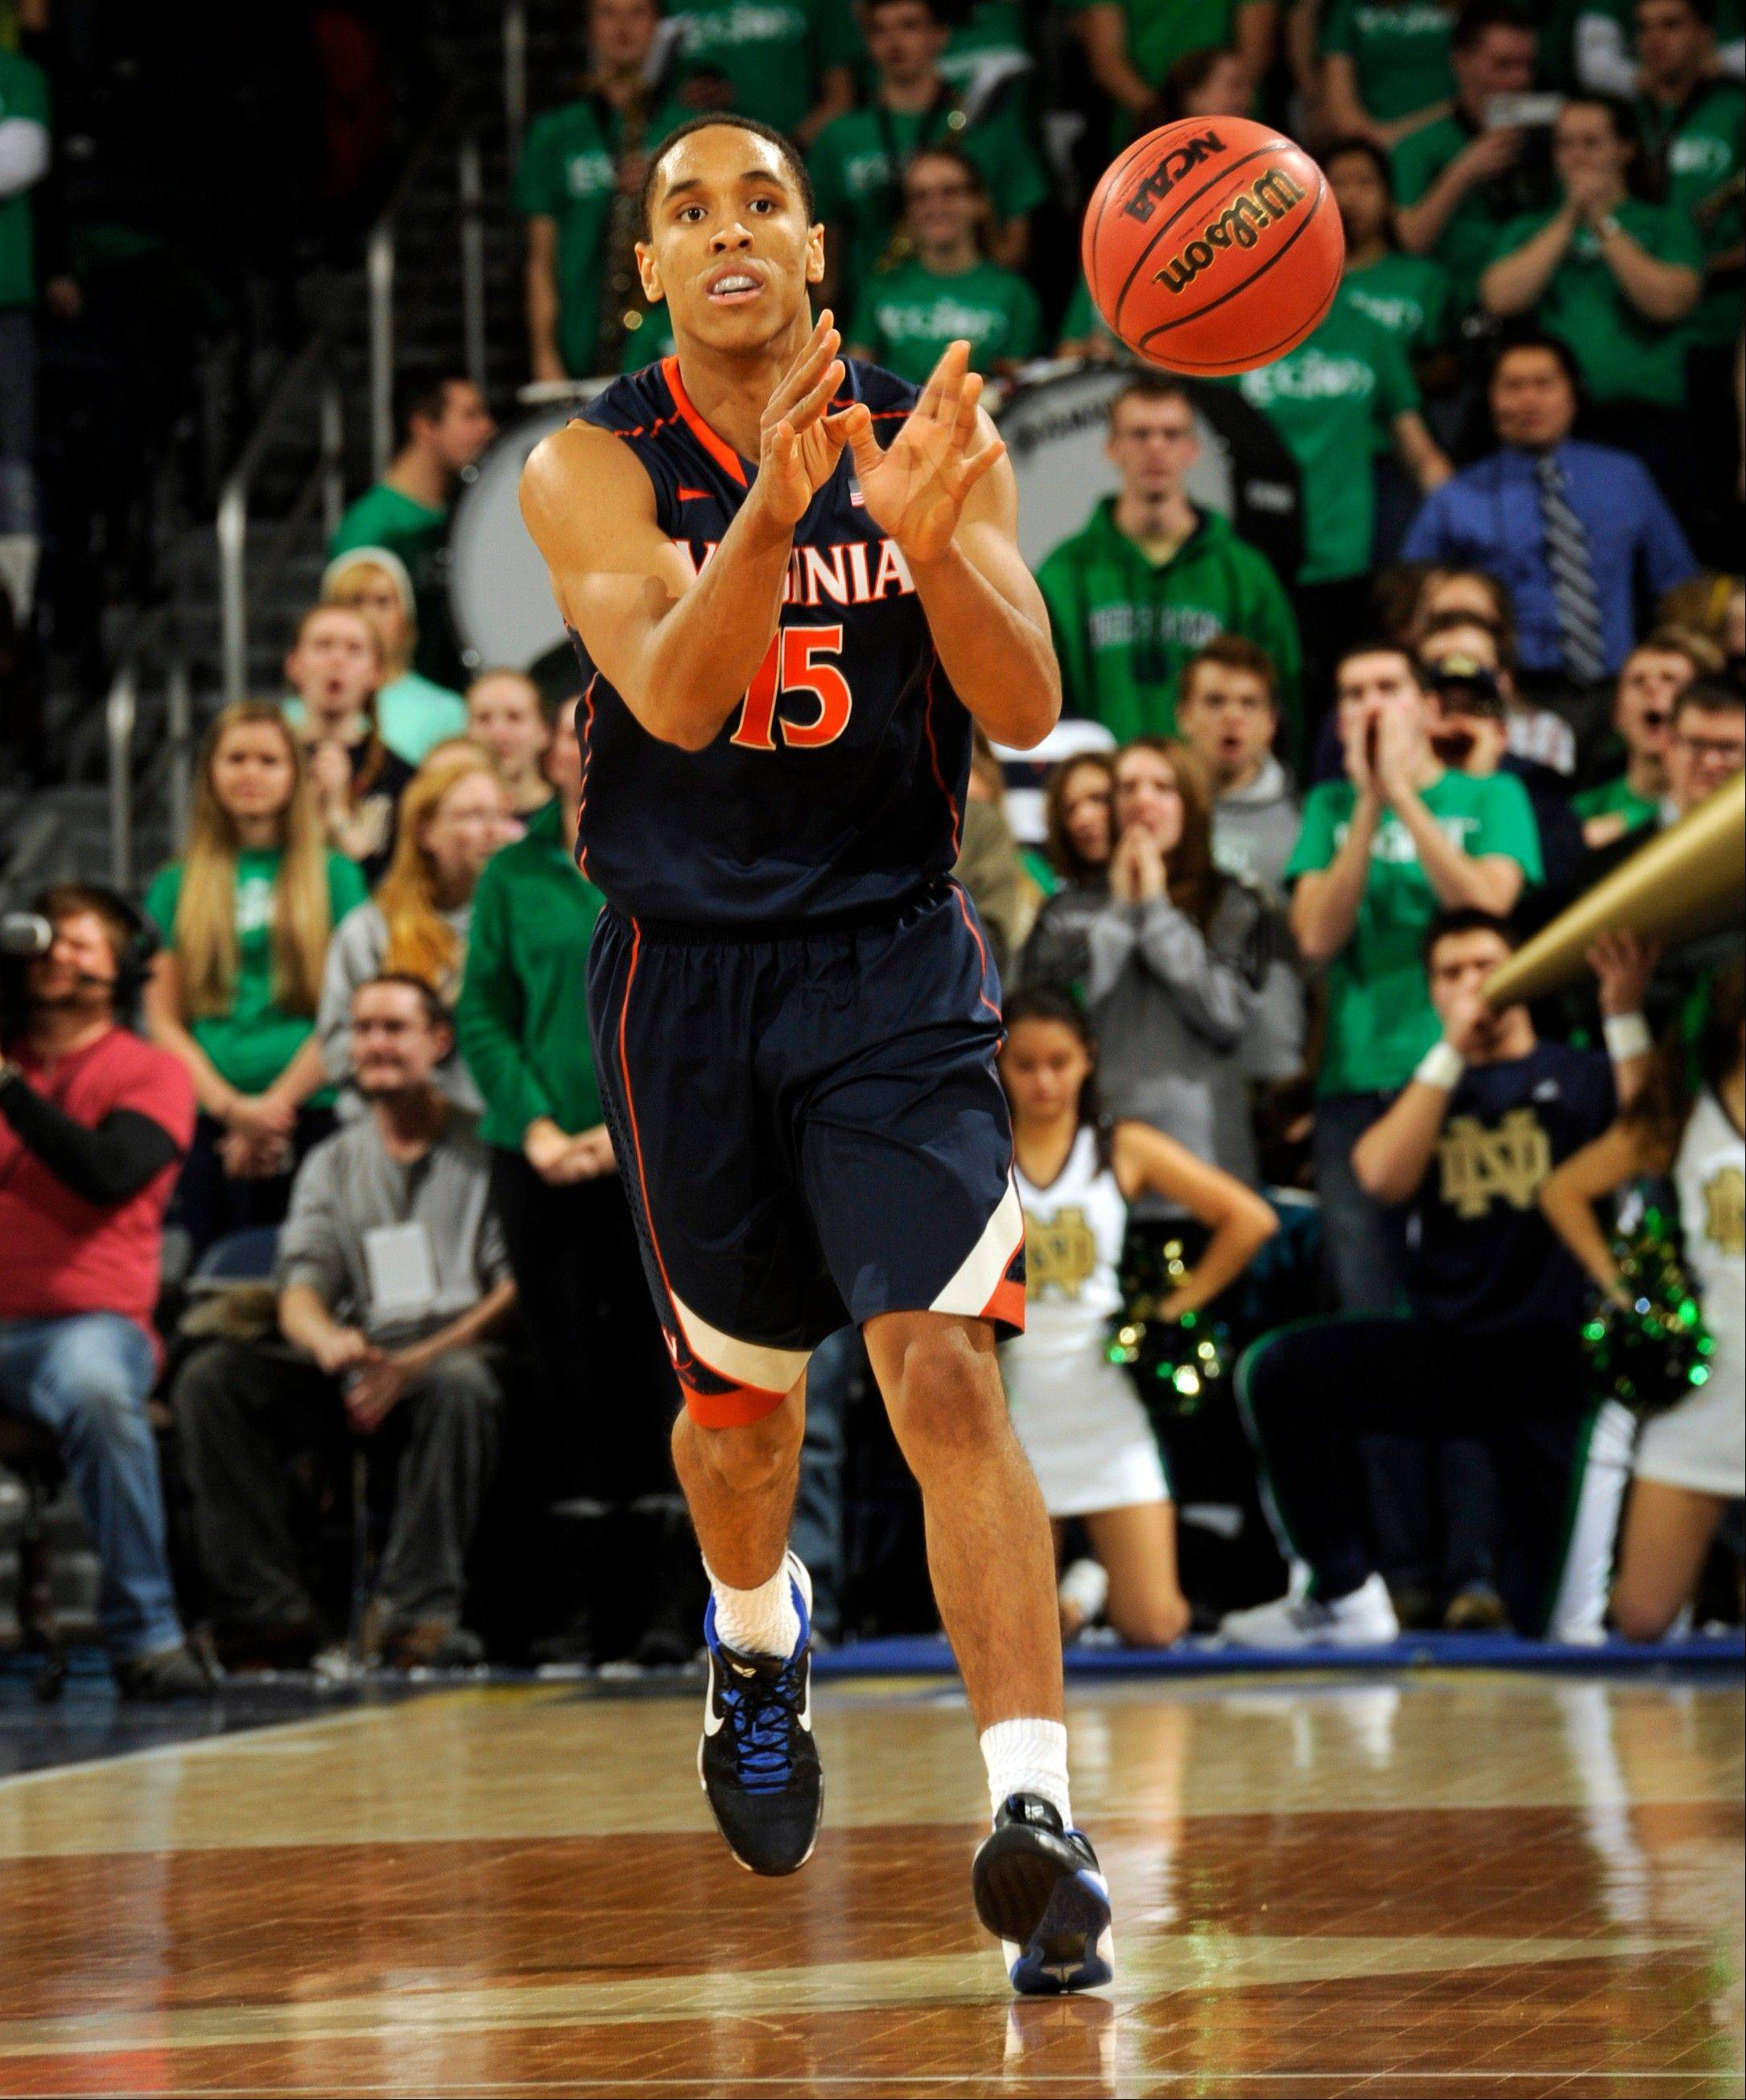 Virginia guard Malcolm Brogdon passes the ball during Tuesday night's game against Notre Dame in South Bend, Ind. Virginia beat the Irish 68-53.